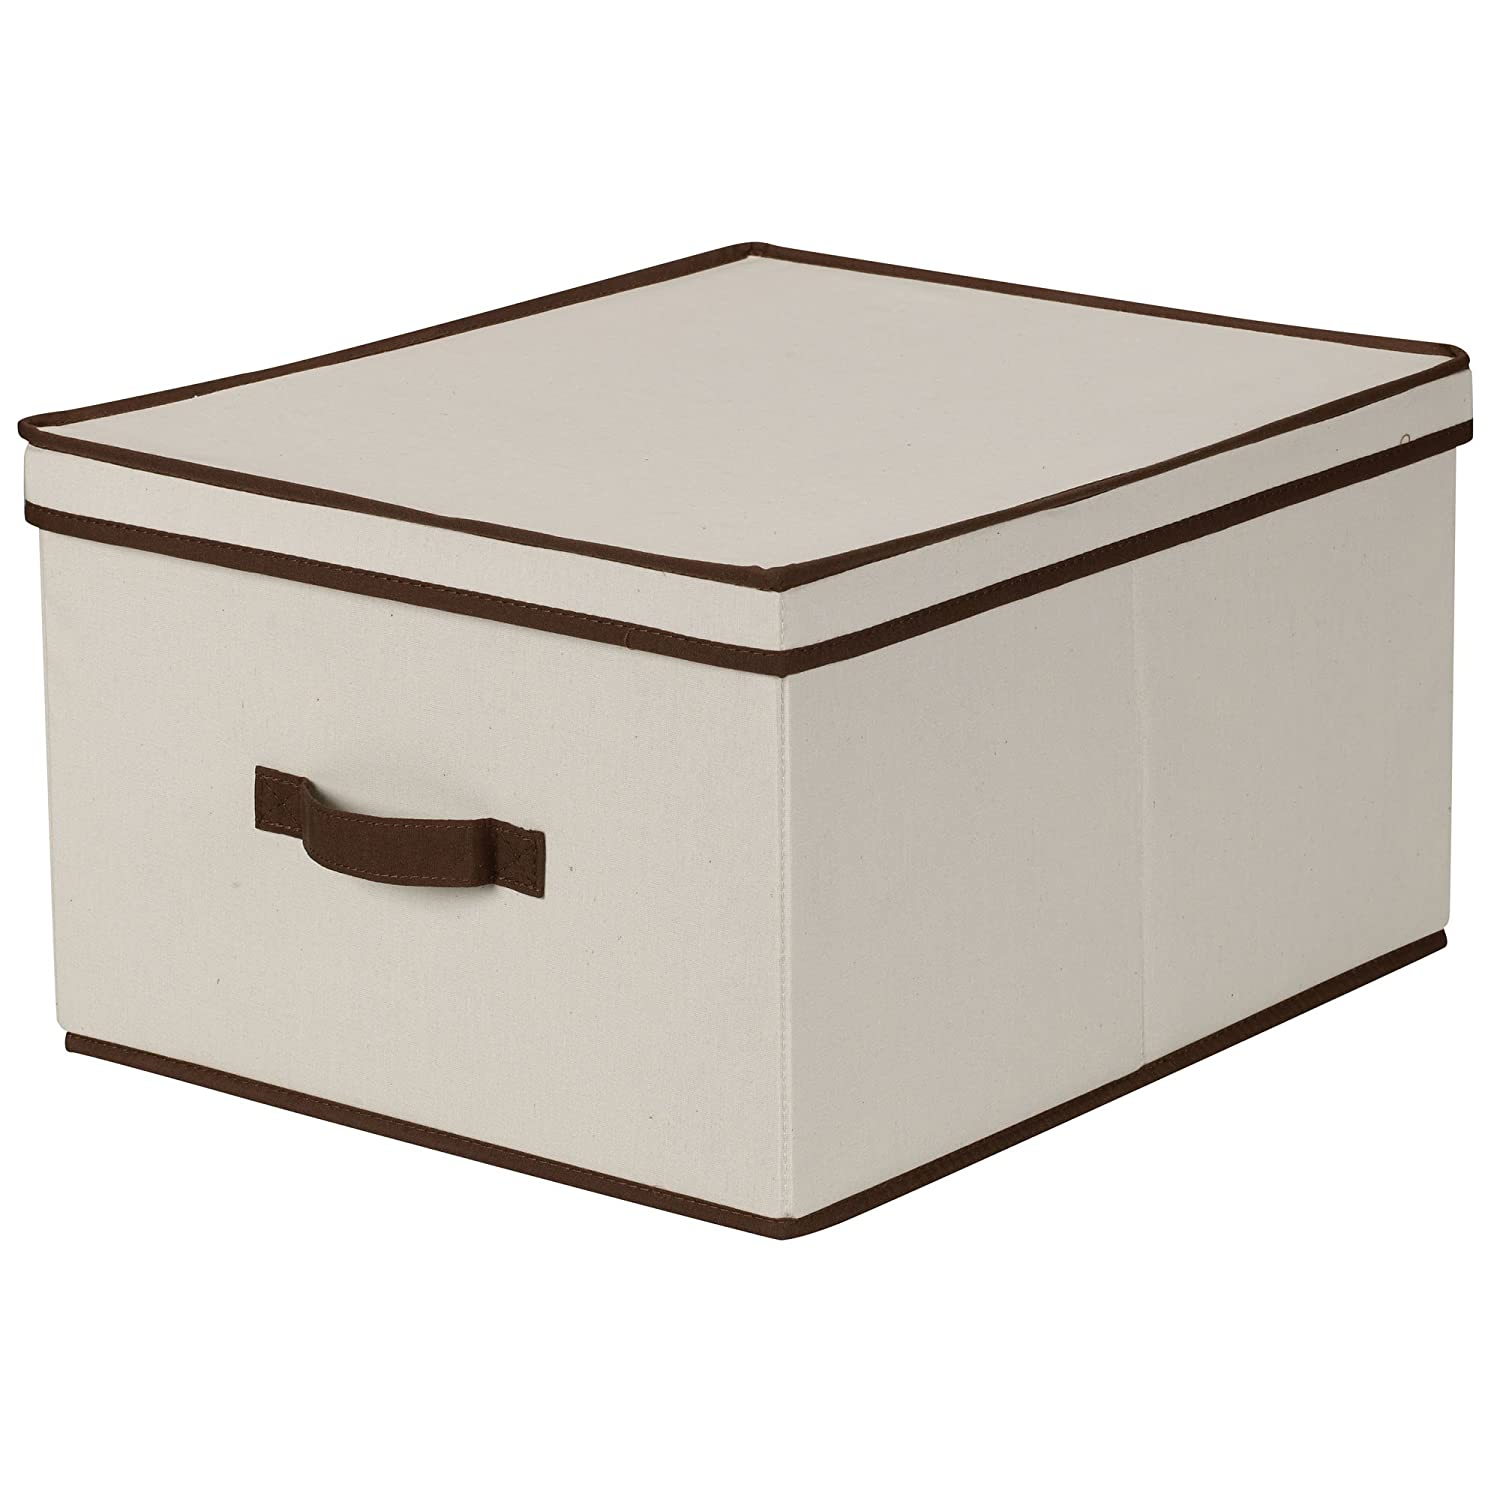 Attrayant Amazon.com: Household Essentials 515 Storage Box With Lid And Handle   Natural Beige Canvas With Brown Trim  Jumbo: Home U0026 Kitchen